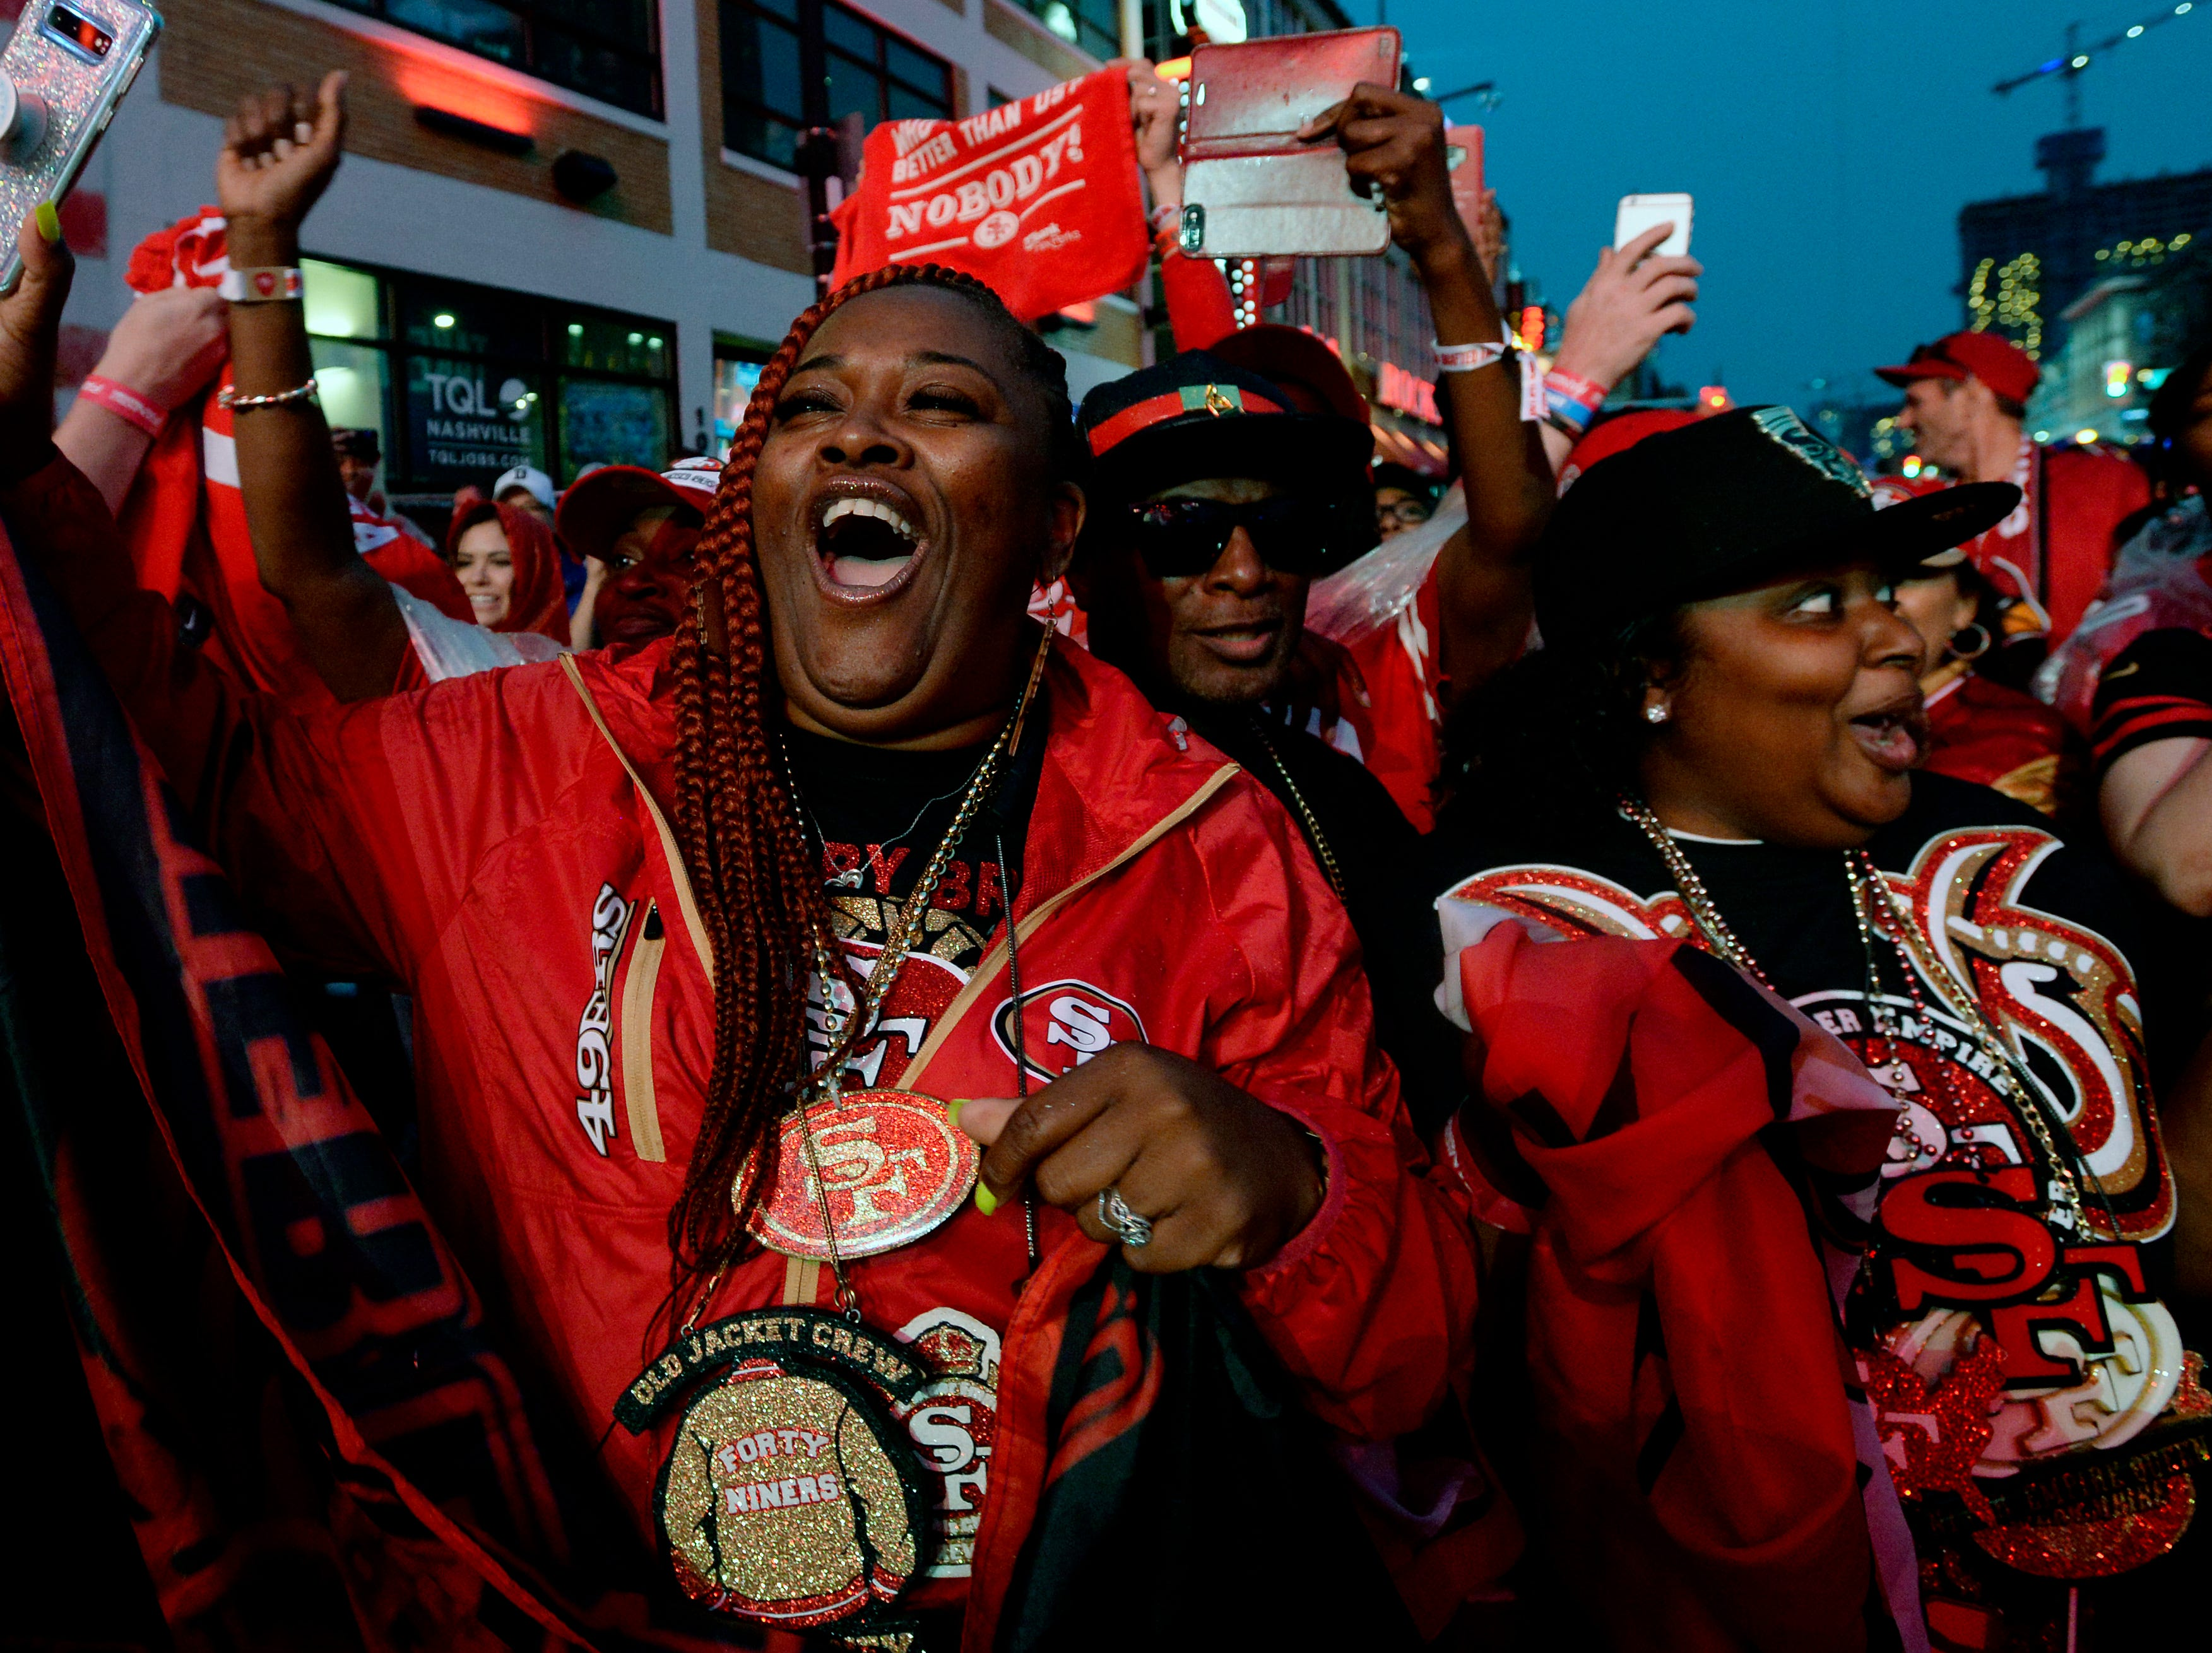 San Francisco 49ers fans celebrate after the team selected defensive end Nick Bosa  during the NFL Draft on Thursday, April 25, 2019, in Nashville, Tenn.